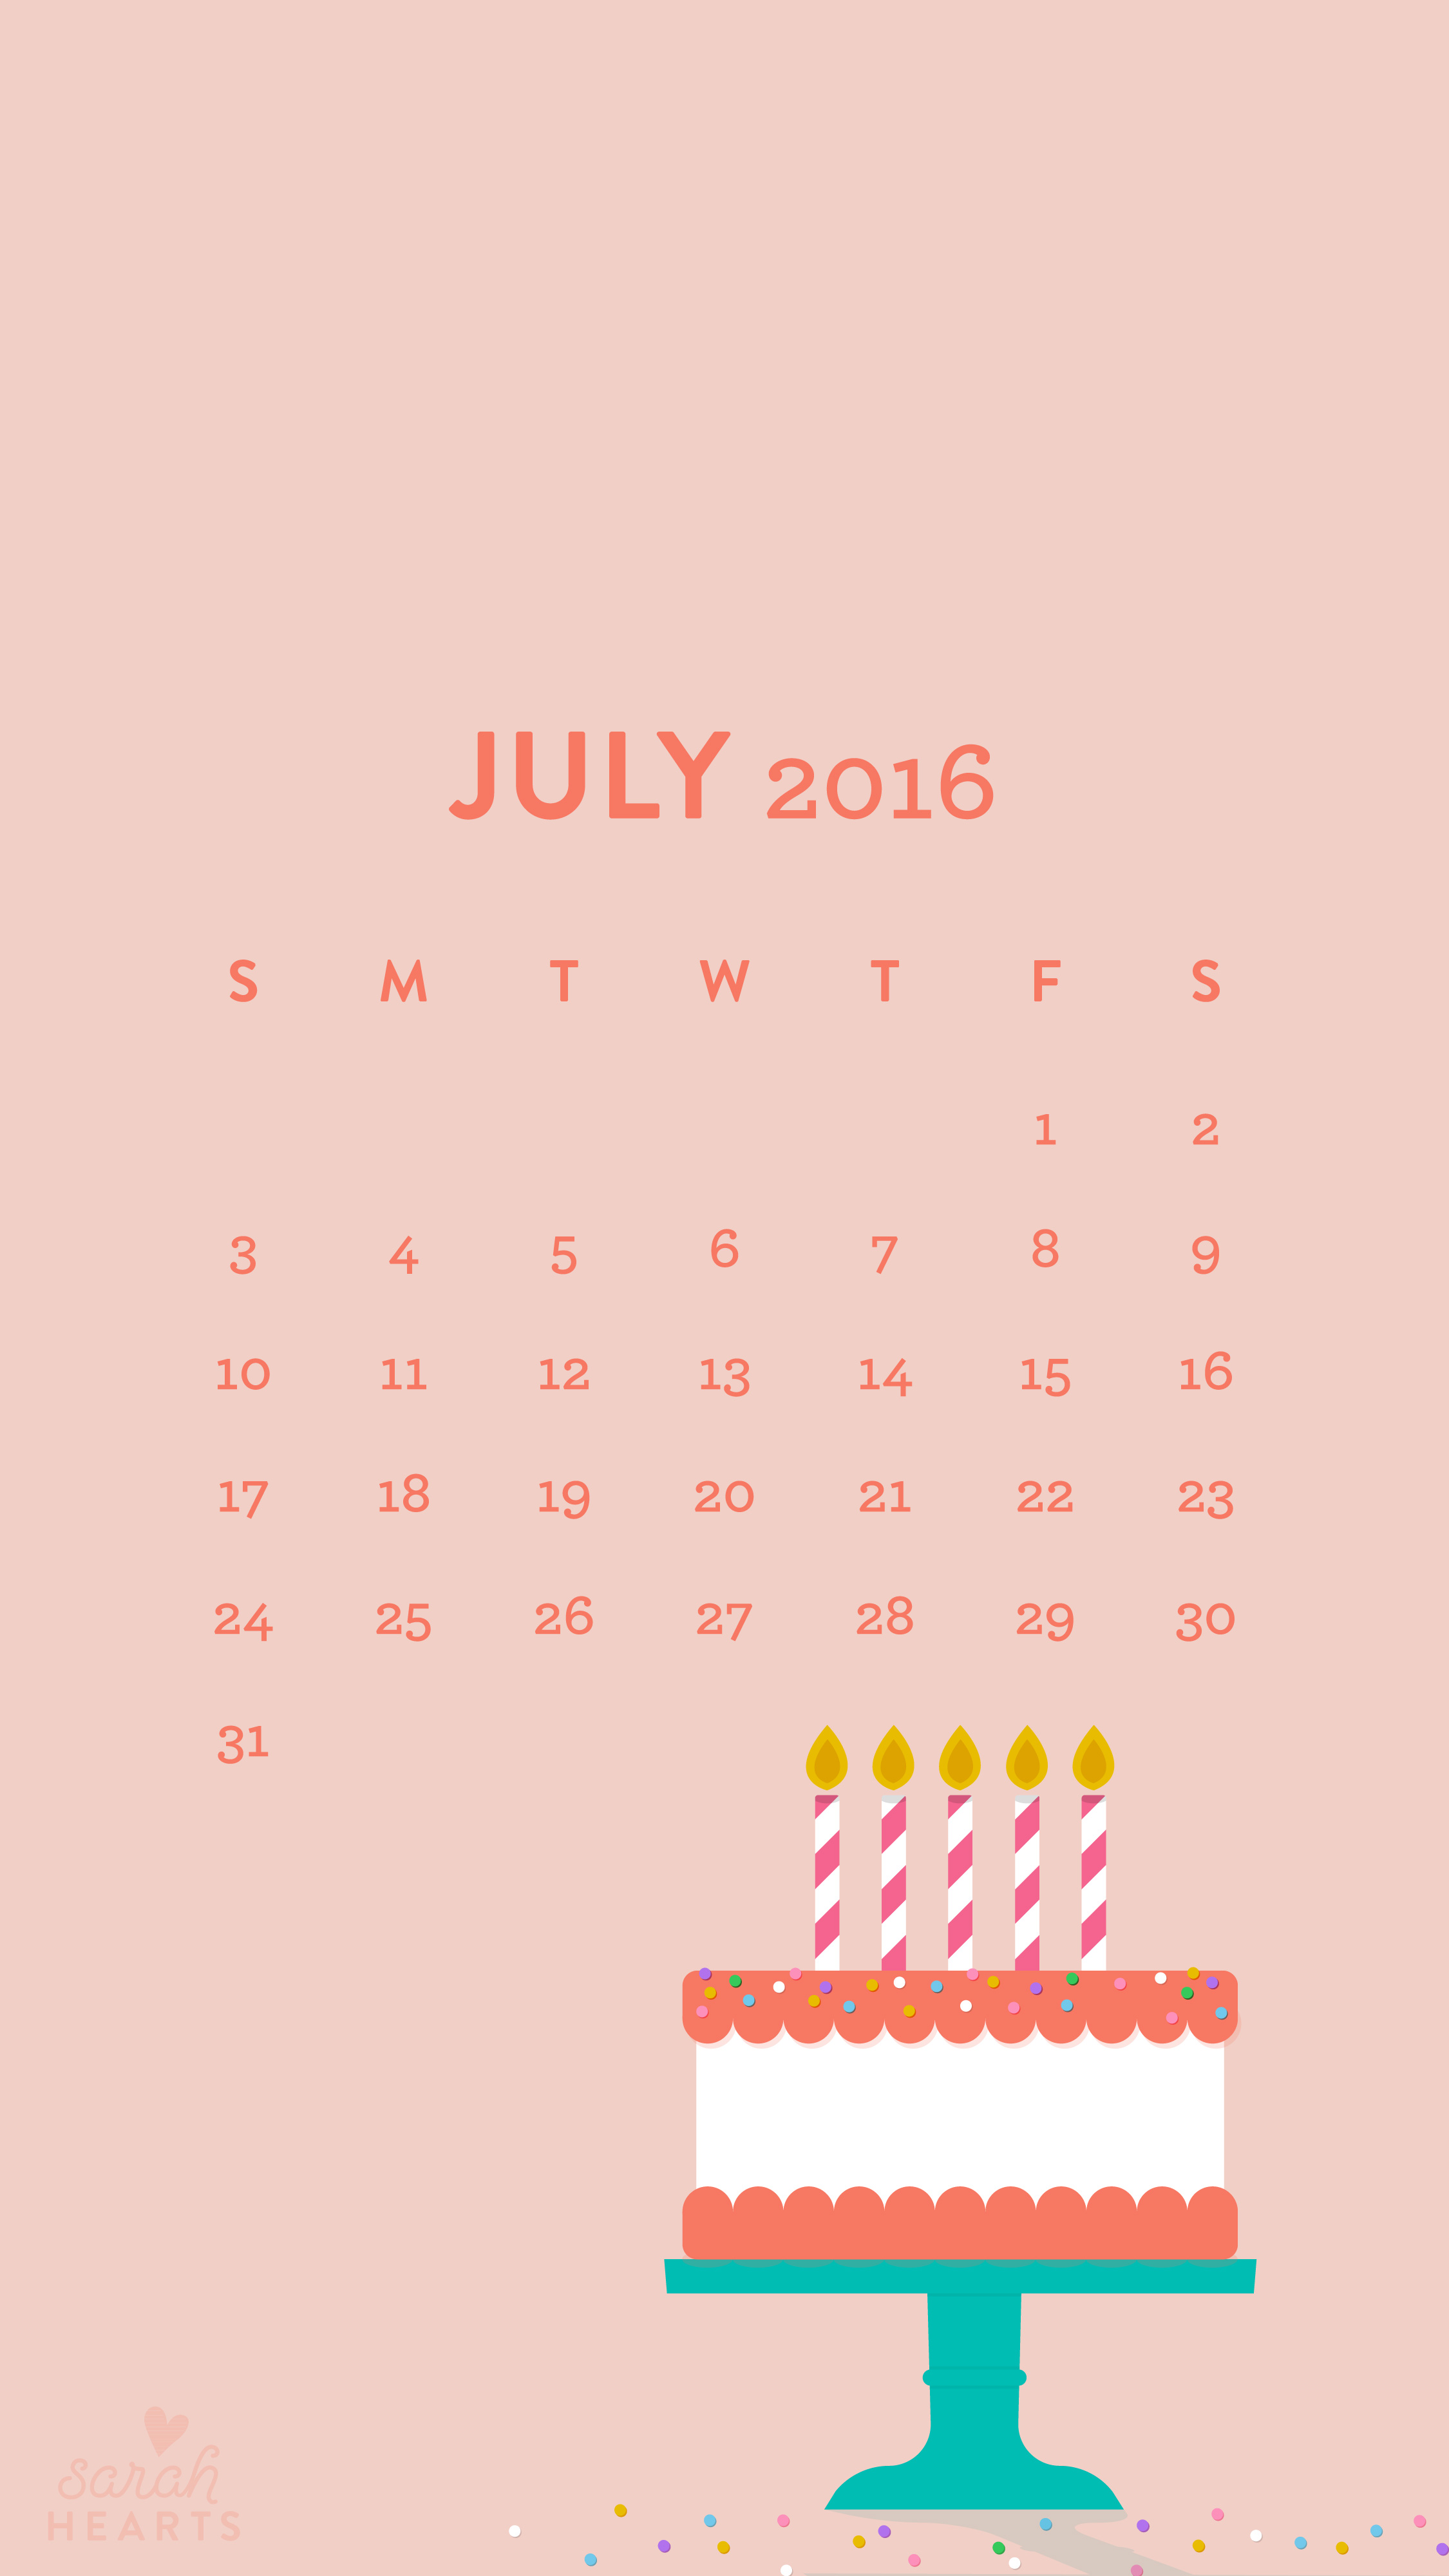 Cute Brand Wallpapers July 2016 Birthday Cake Calendar Wallpaper Sarah Hearts